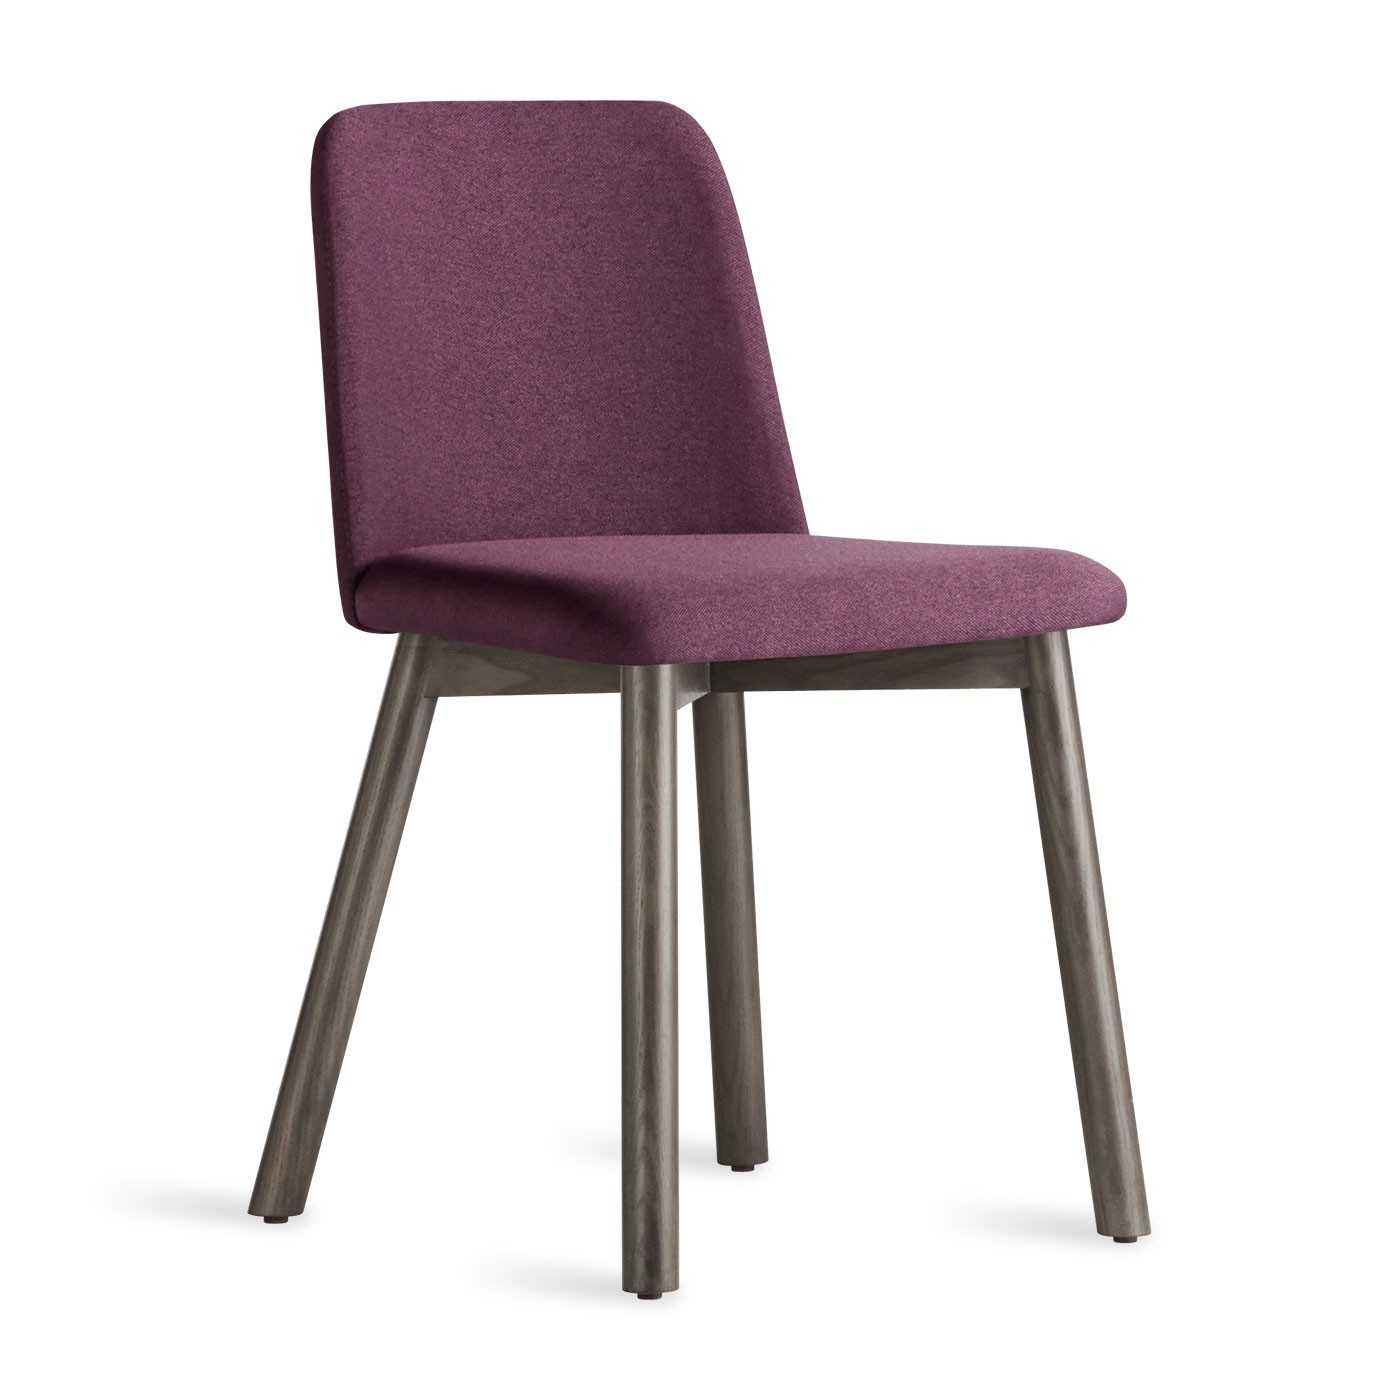 Simple upholstered dining chair with wooden legs.